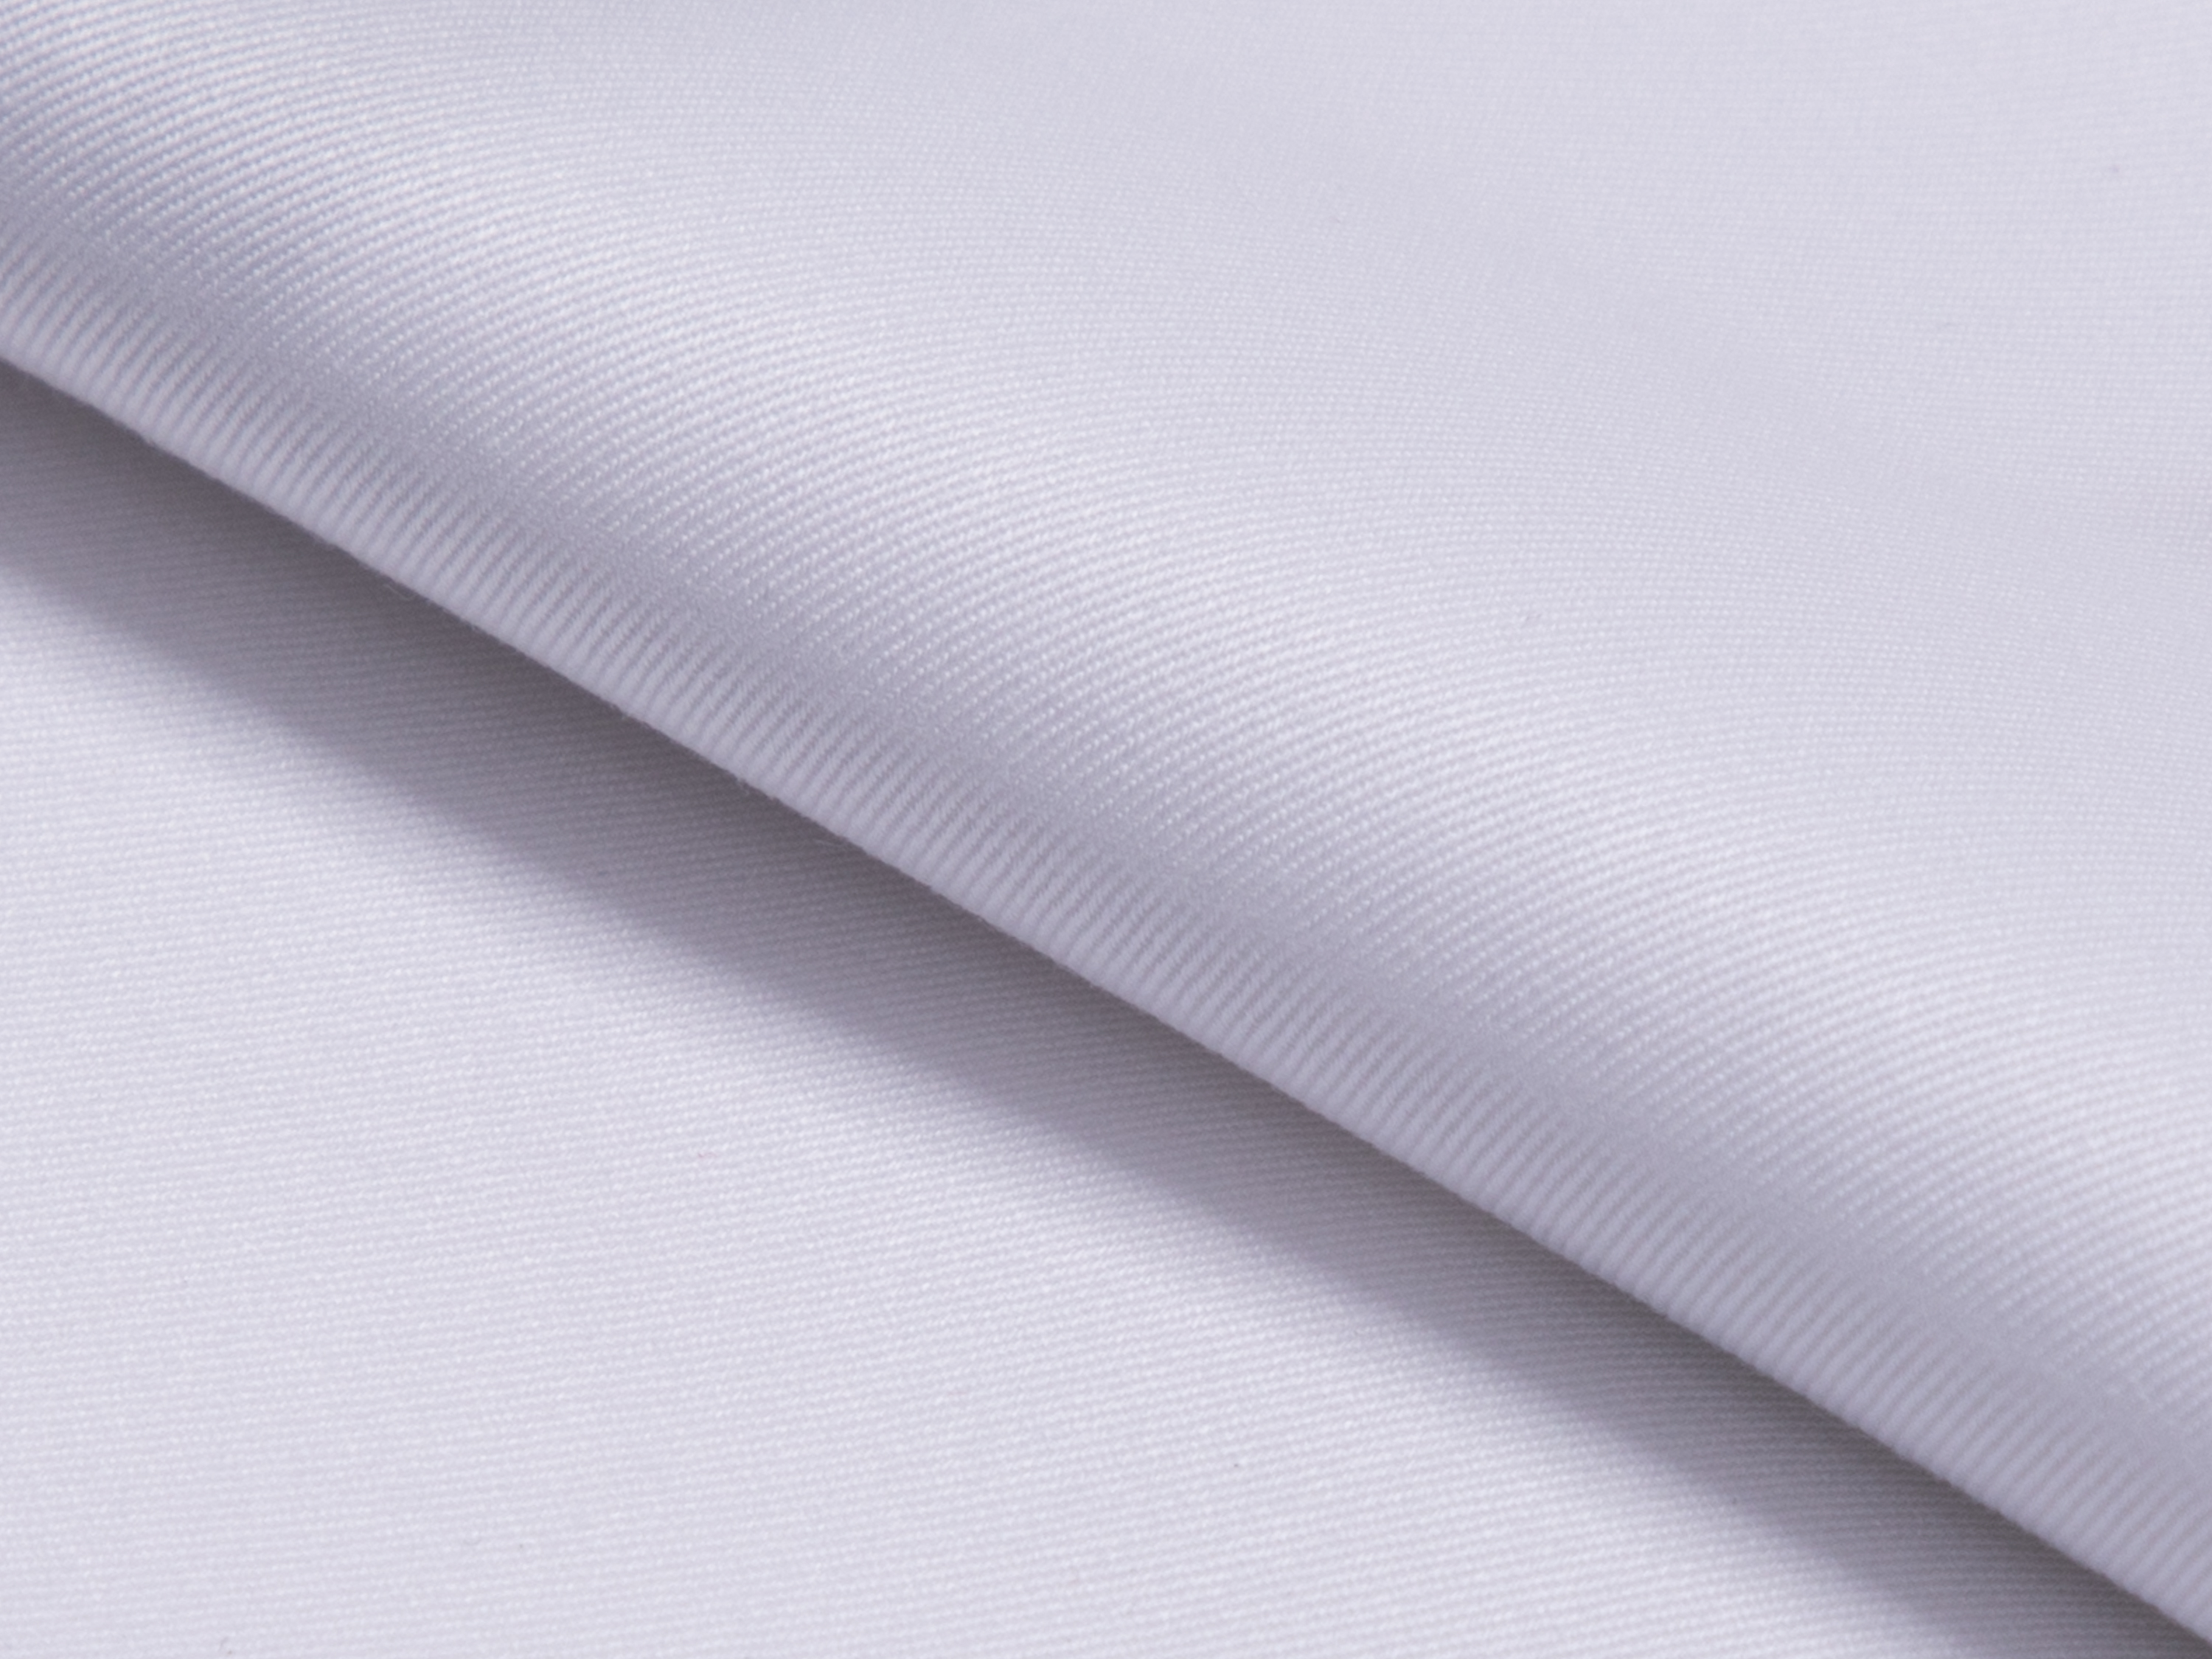 Buy tailor made shirts online - MAYFAIR (NEW) - Twill White